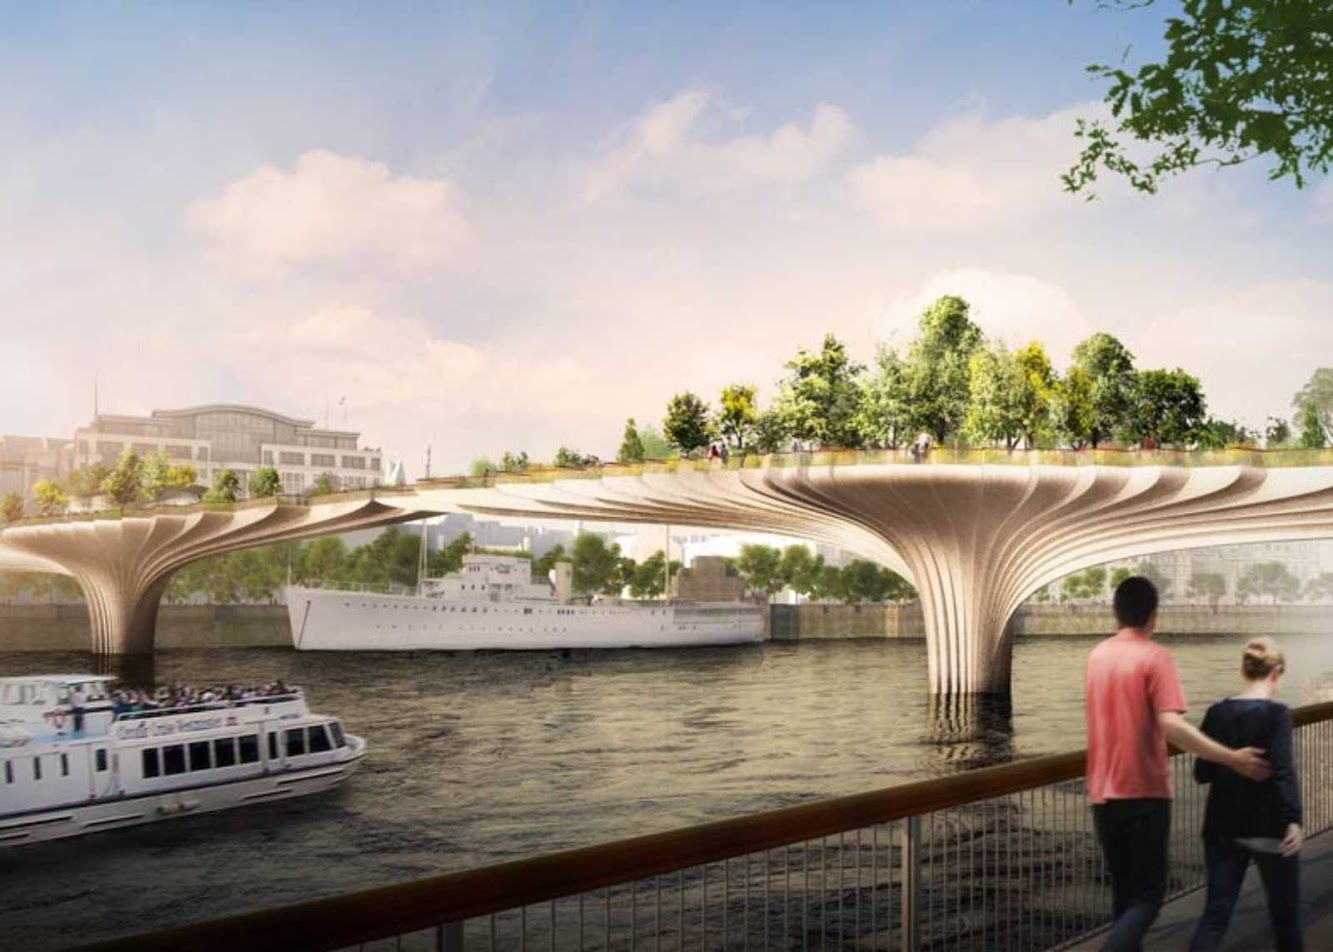 Londra, Regno Unito: 'Garden Bridge' For London by Thomas Heatherwick